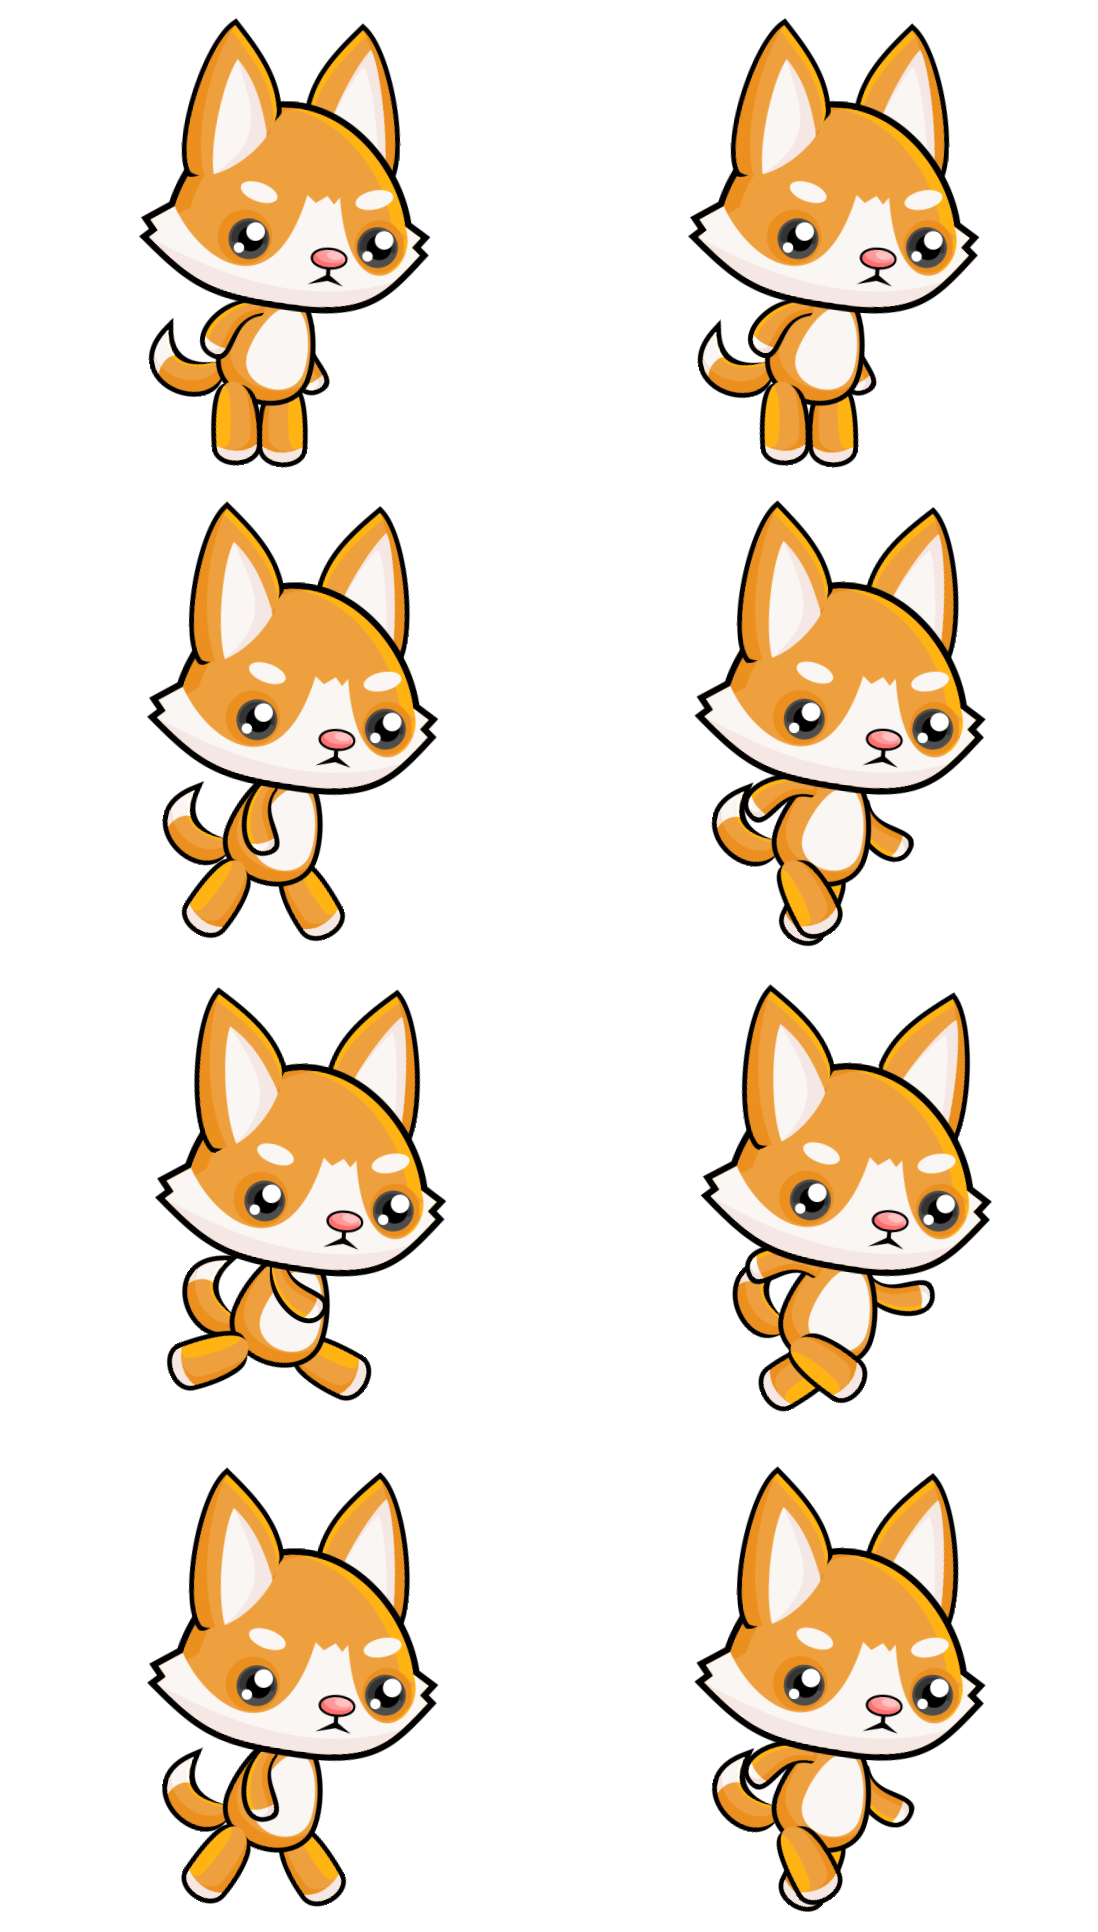 Sprite sheet png. Css animation not working